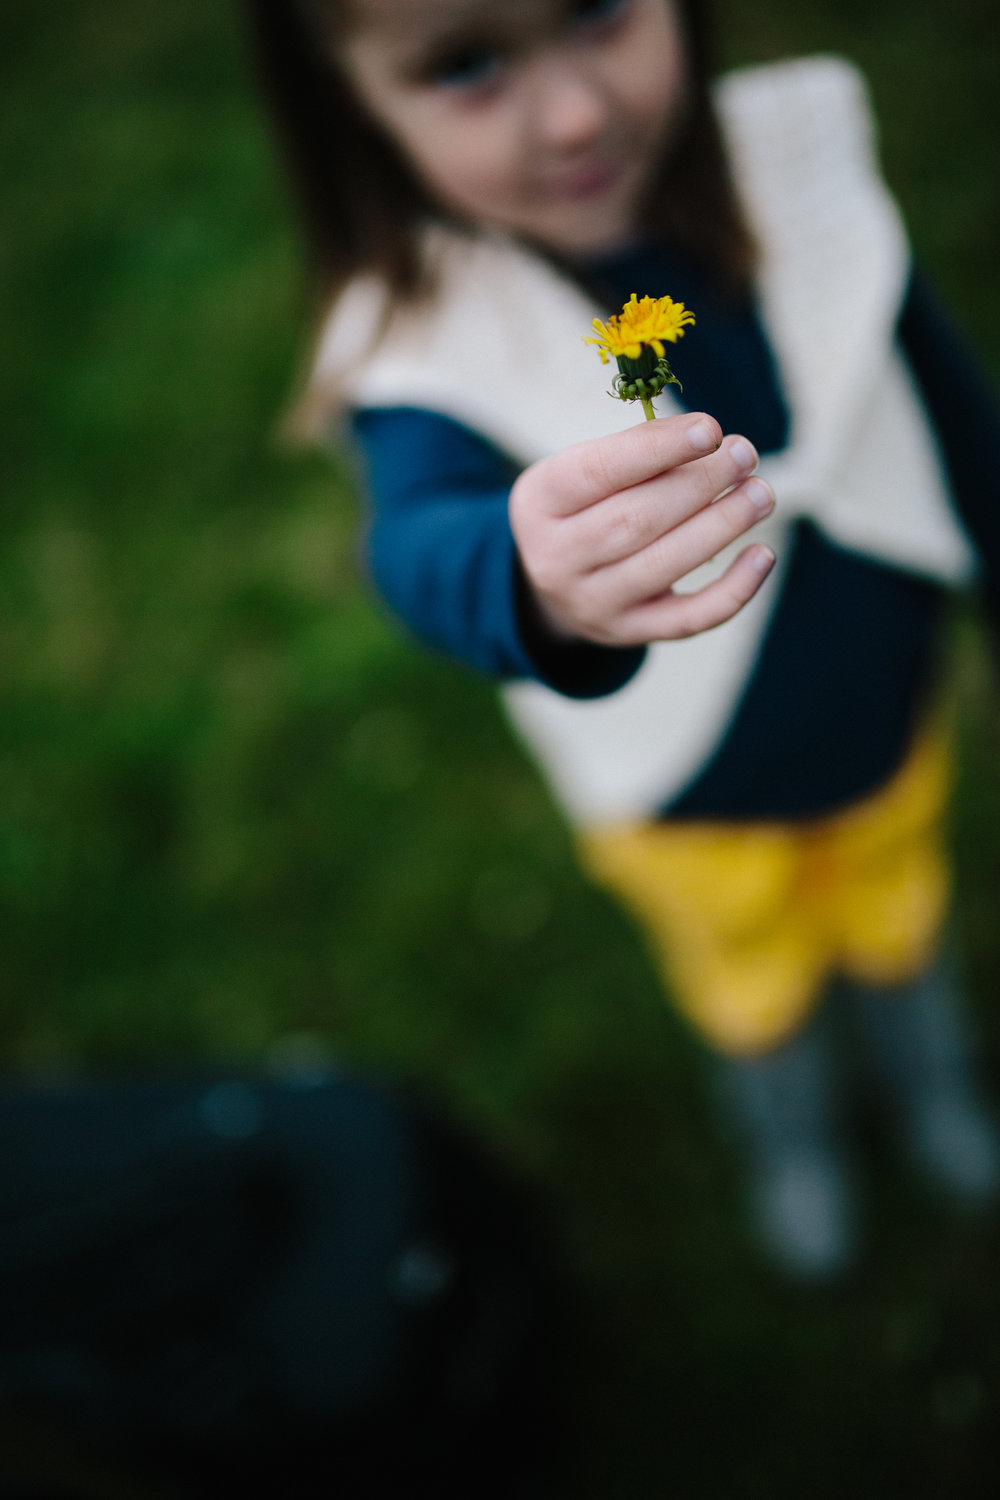 child-holding-flower